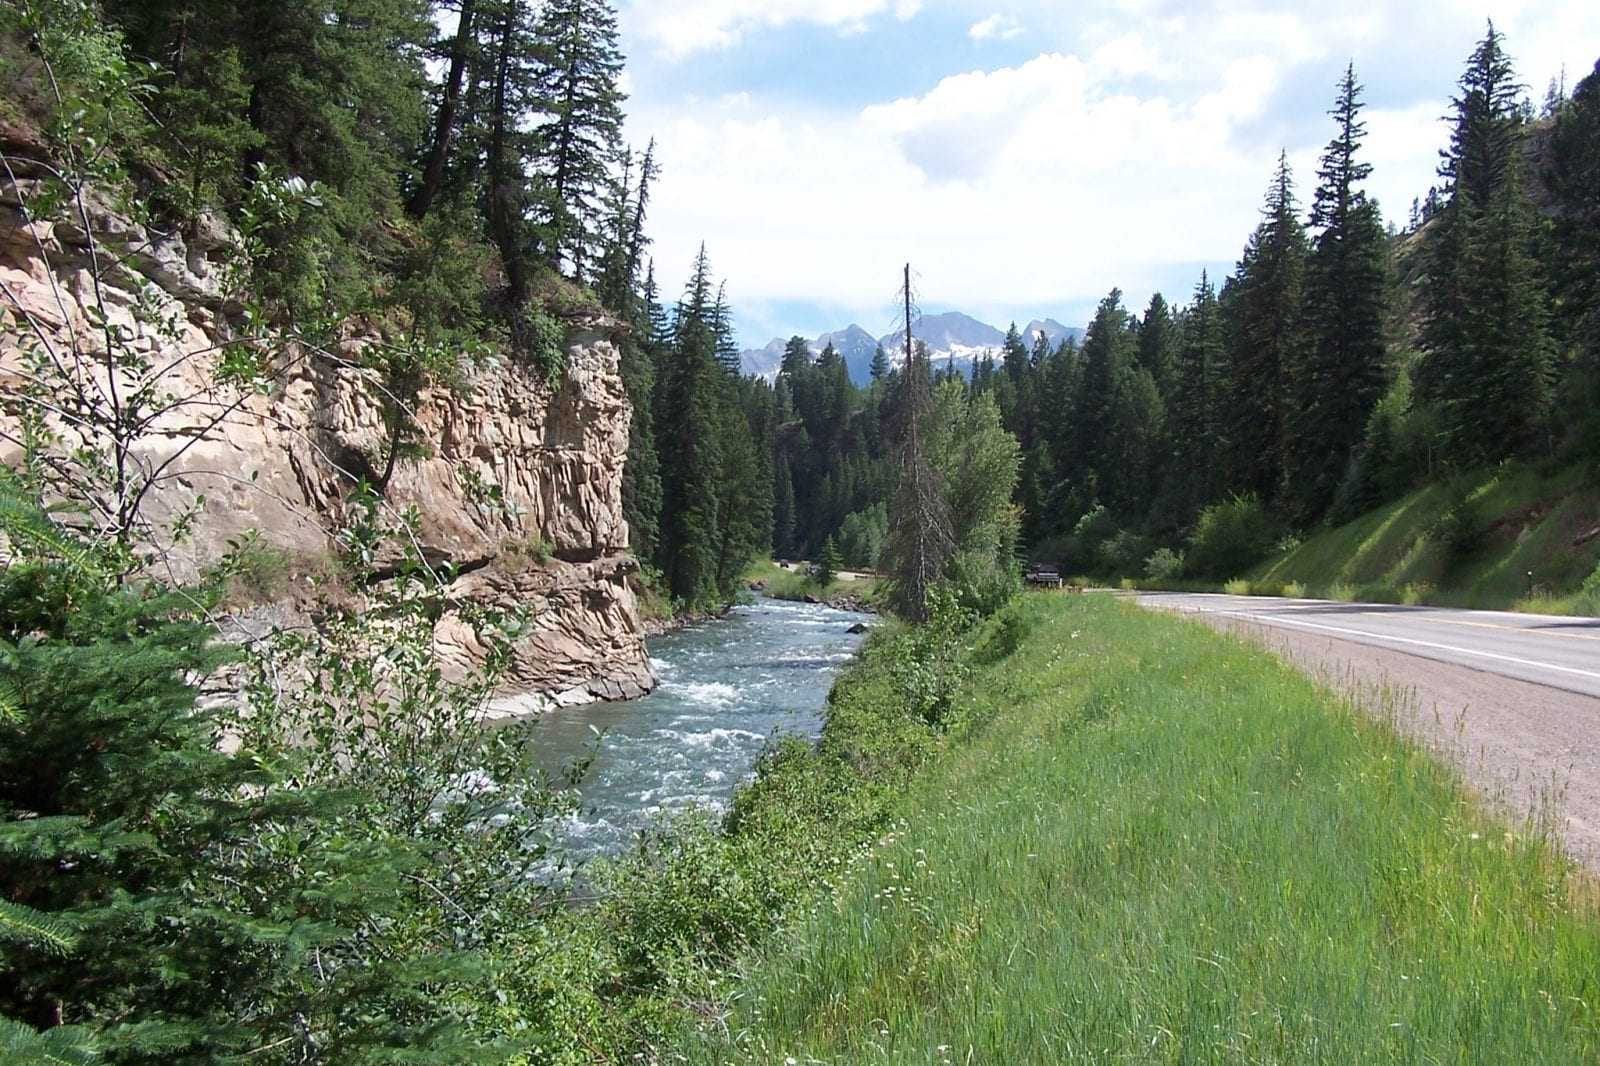 Image of the Crystal River in Colorado